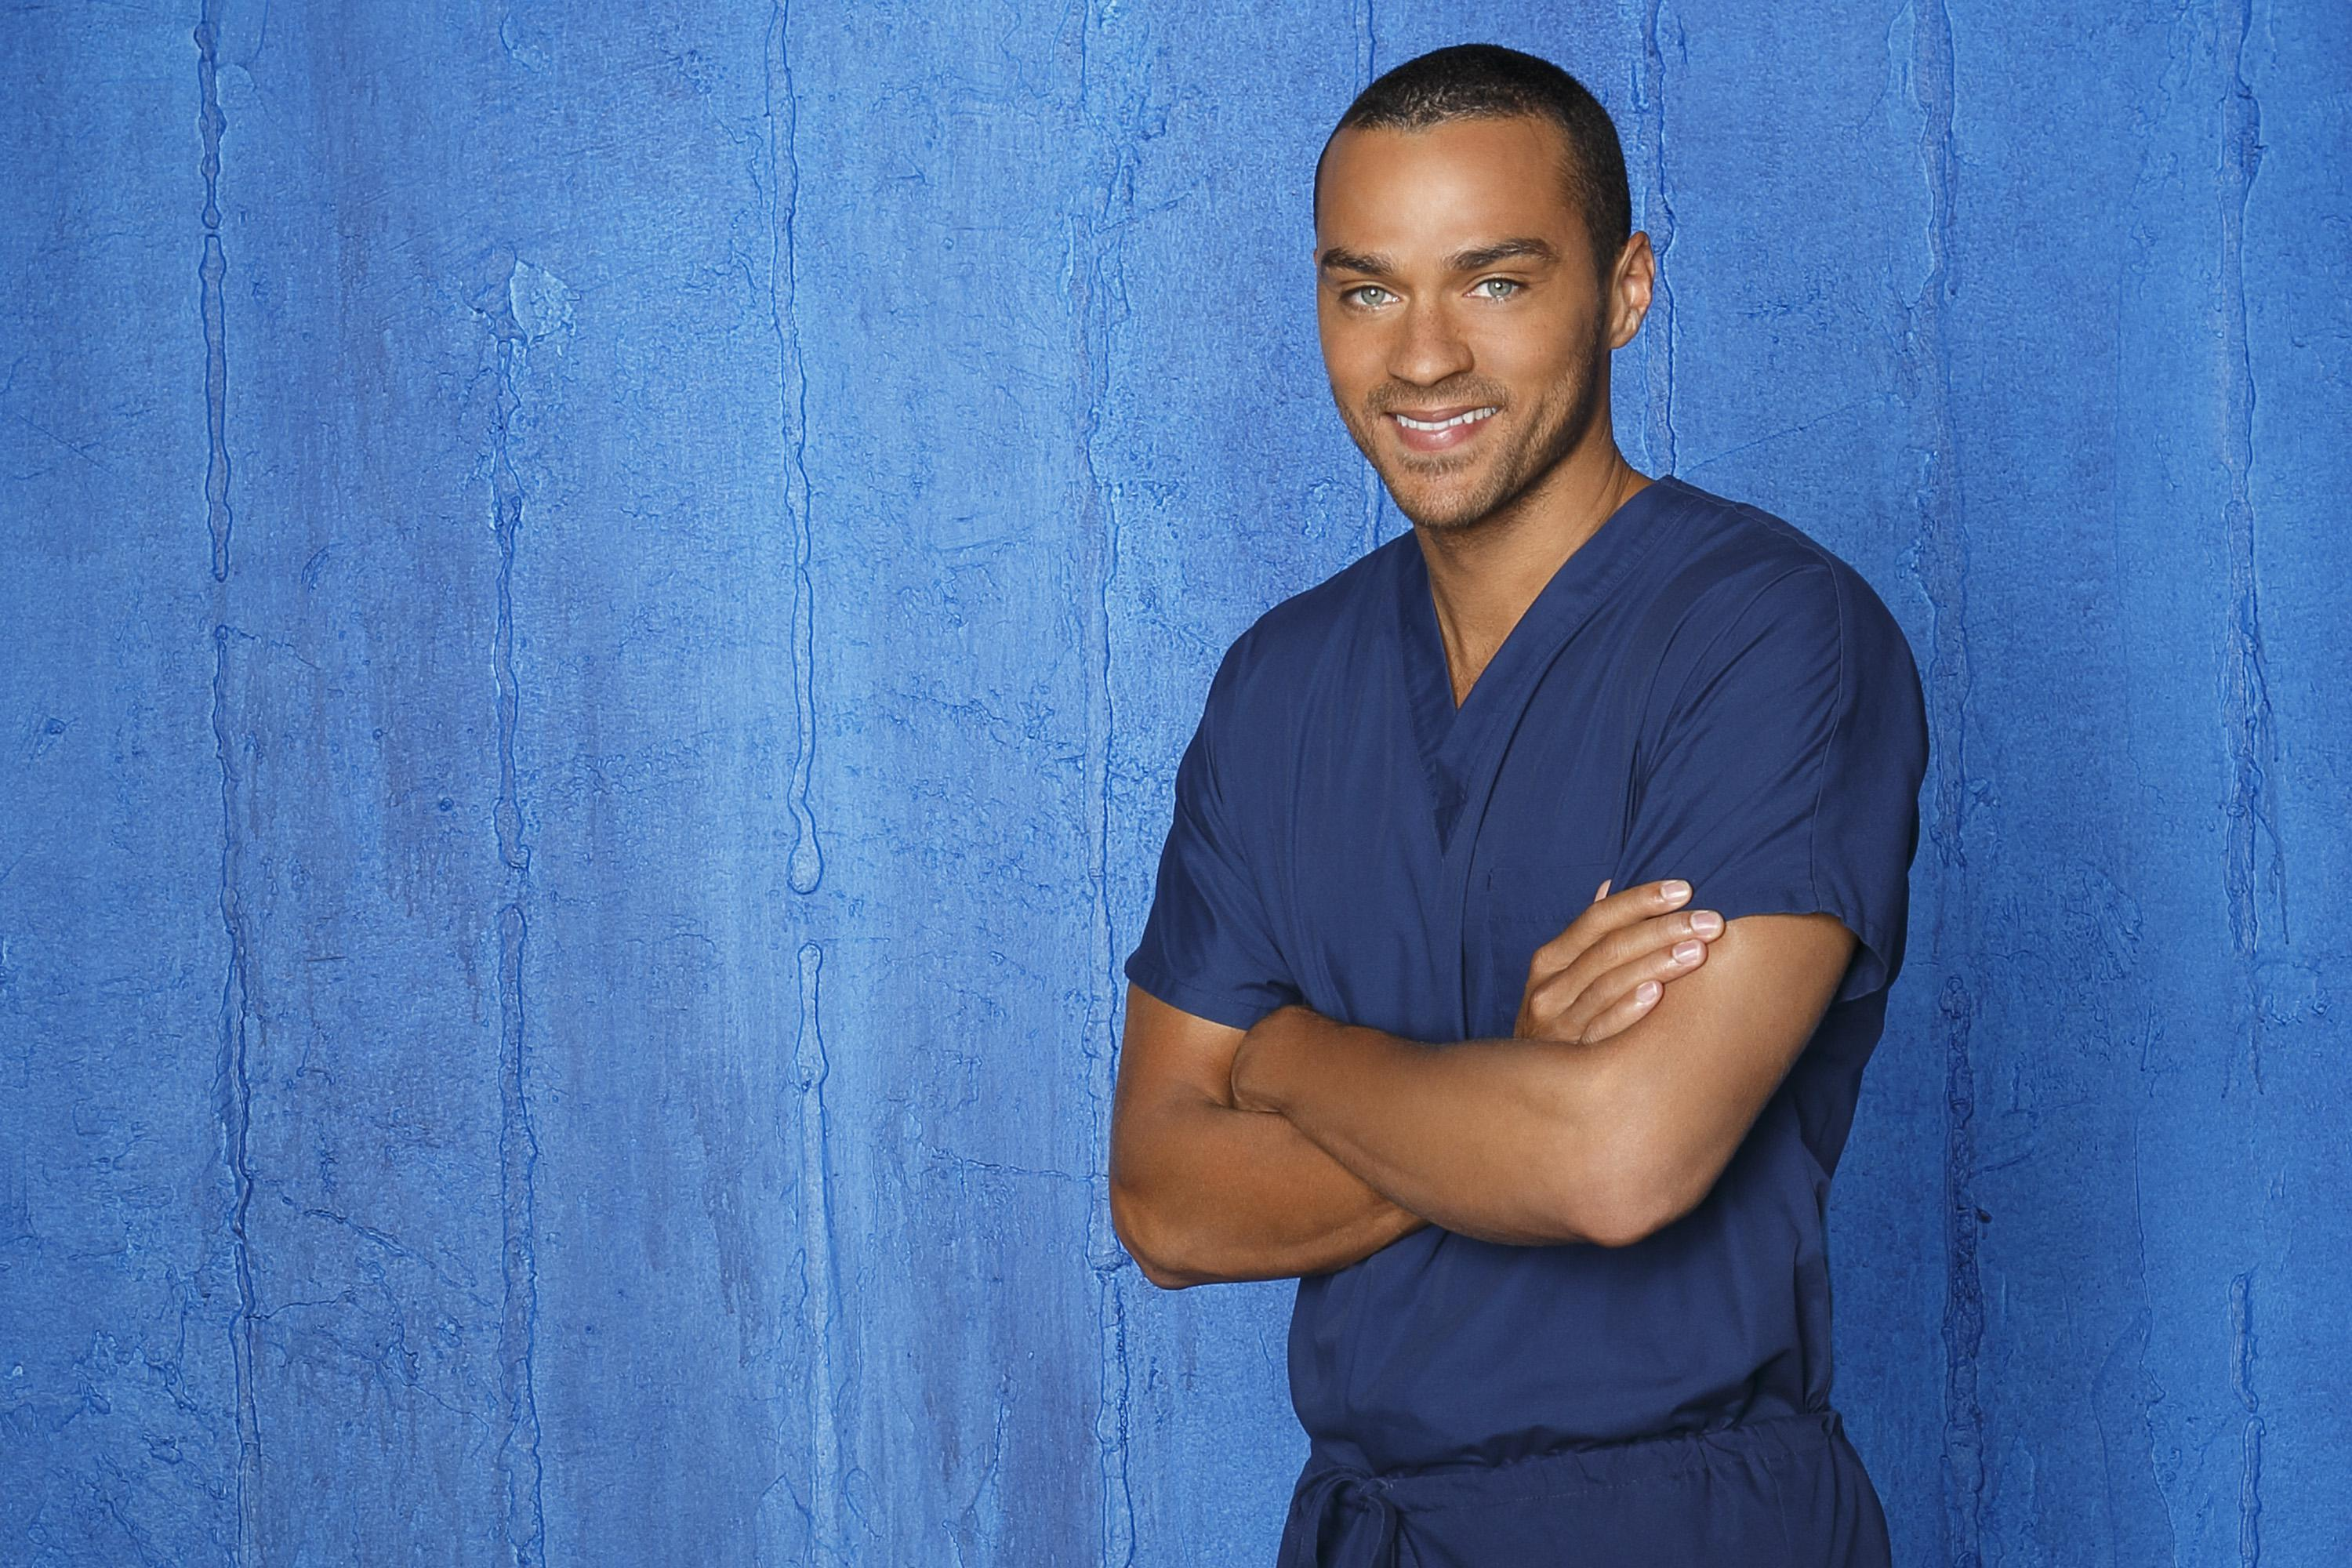 Greys-Anatomy-S09-Jesse-Williams-1-dvdbash | DVDbash